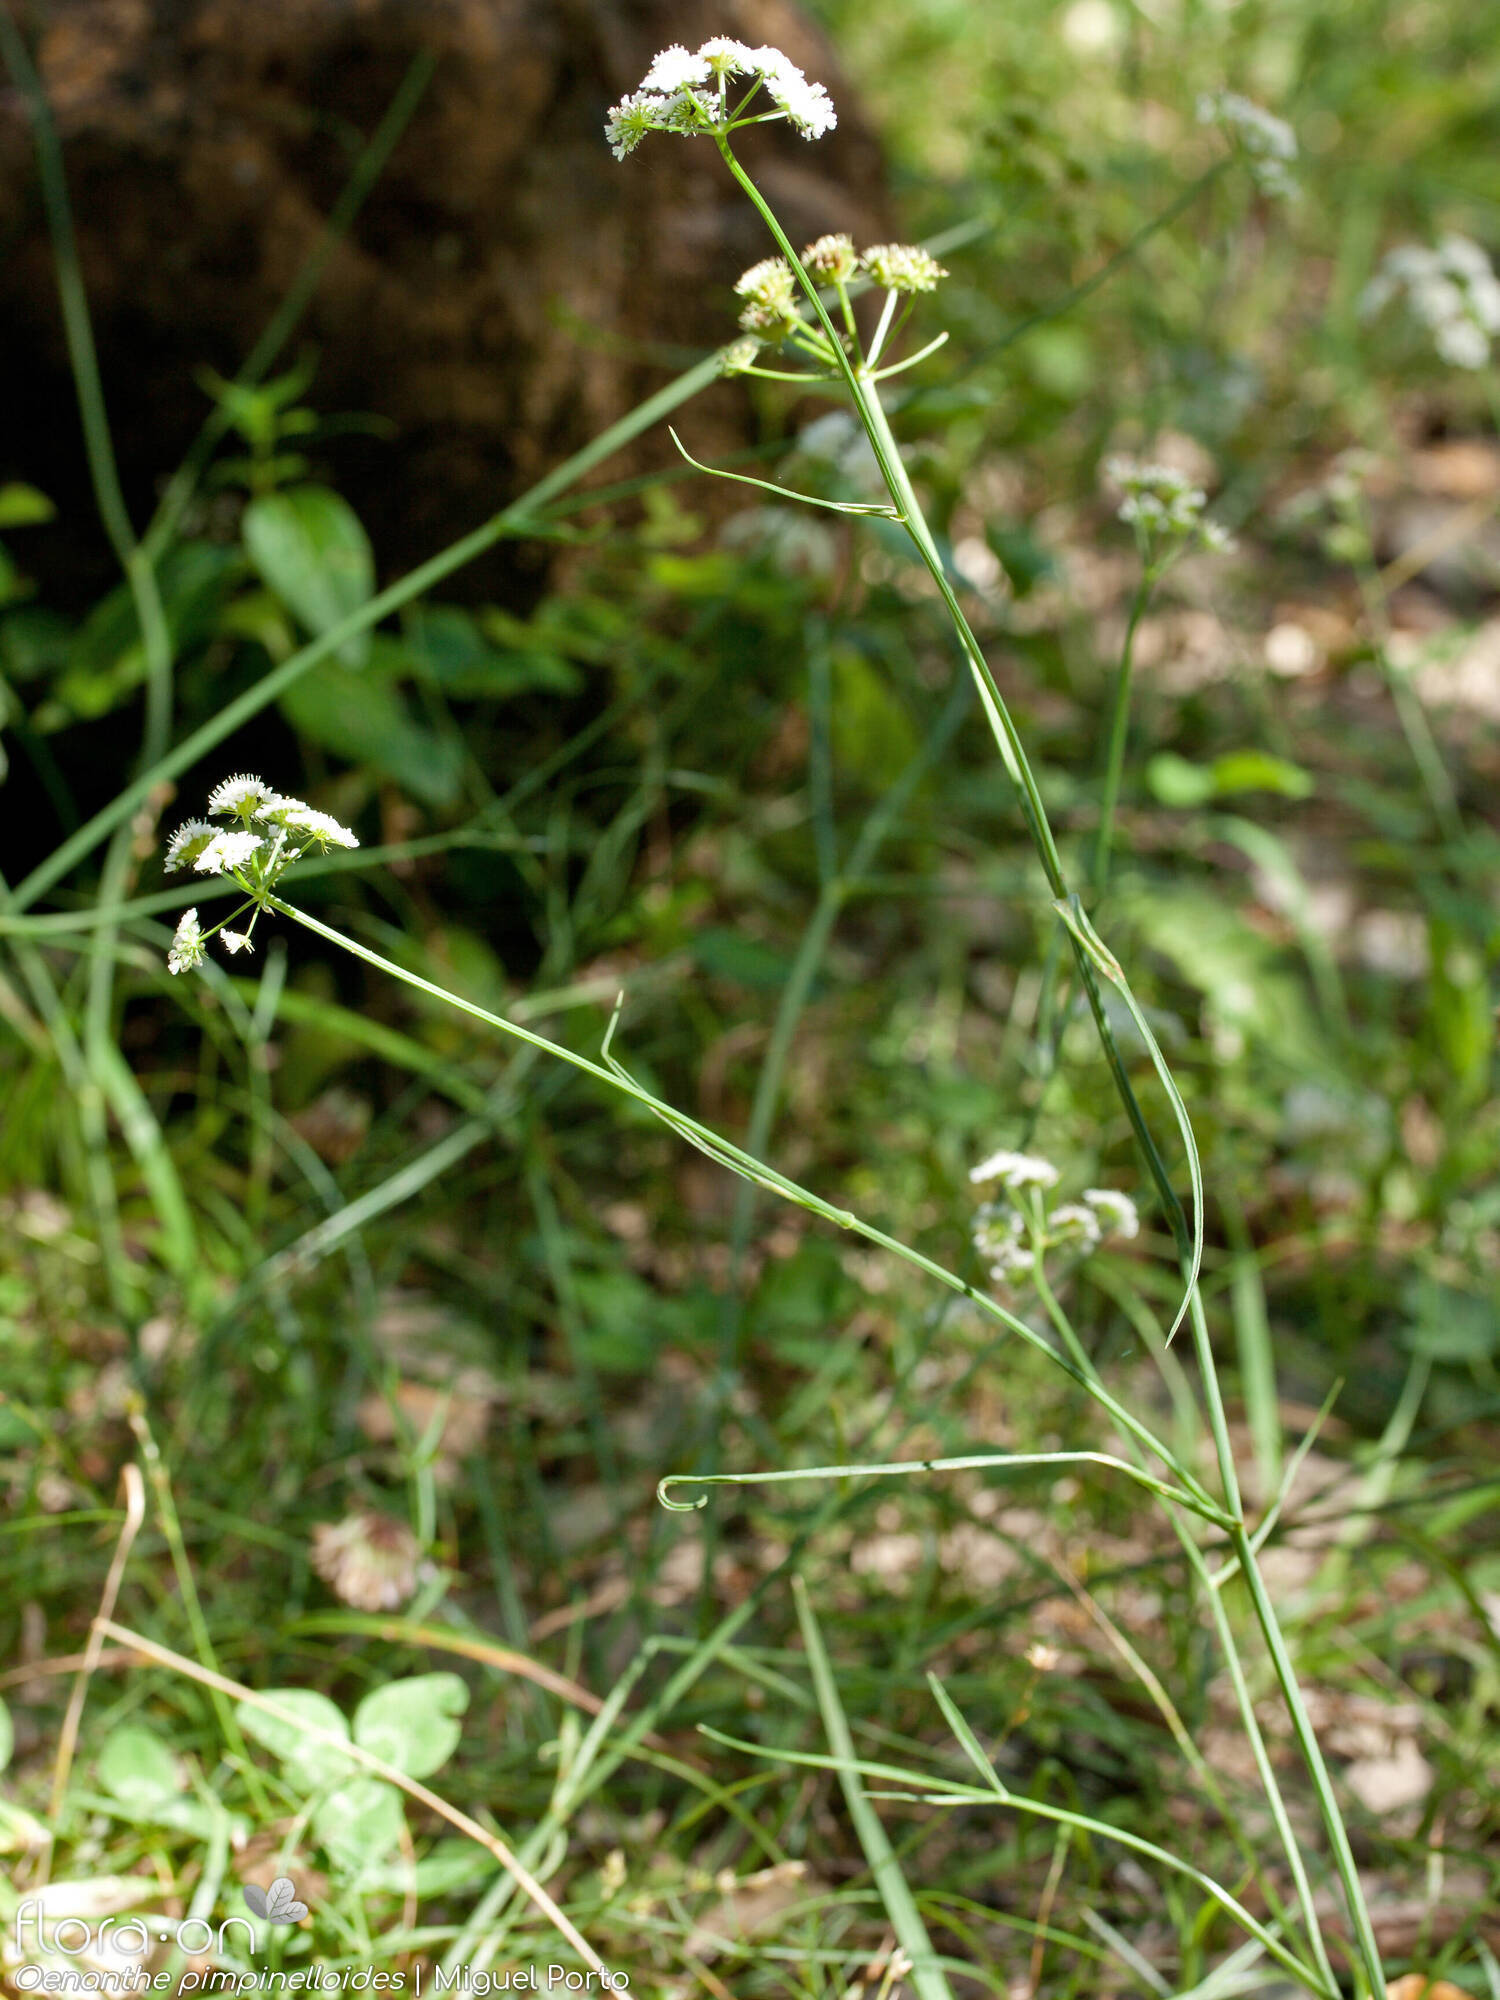 Oenanthe pimpinelloides - Hábito | Miguel Porto; CC BY-NC 4.0